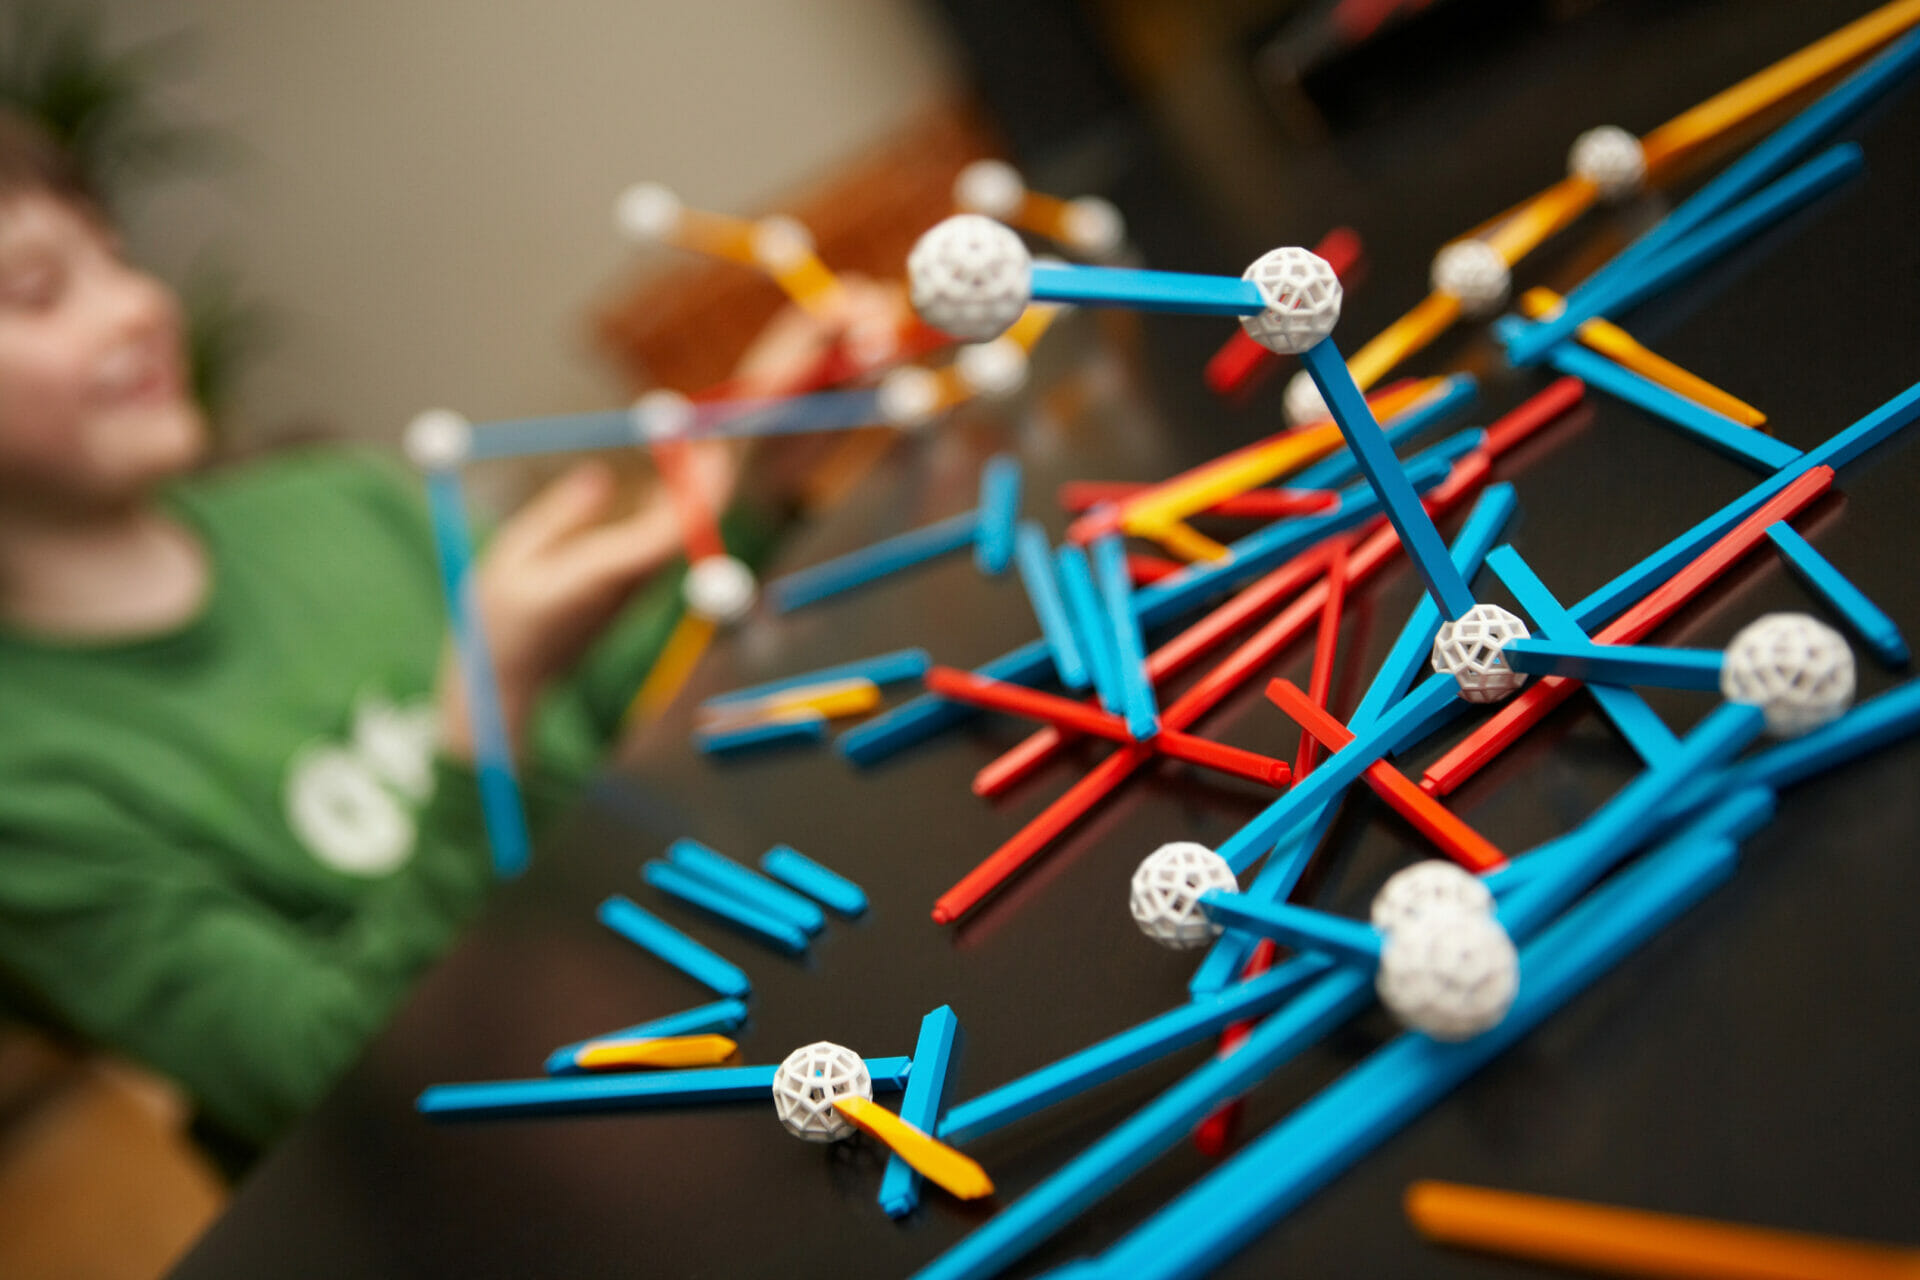 Science model of molecules connecting